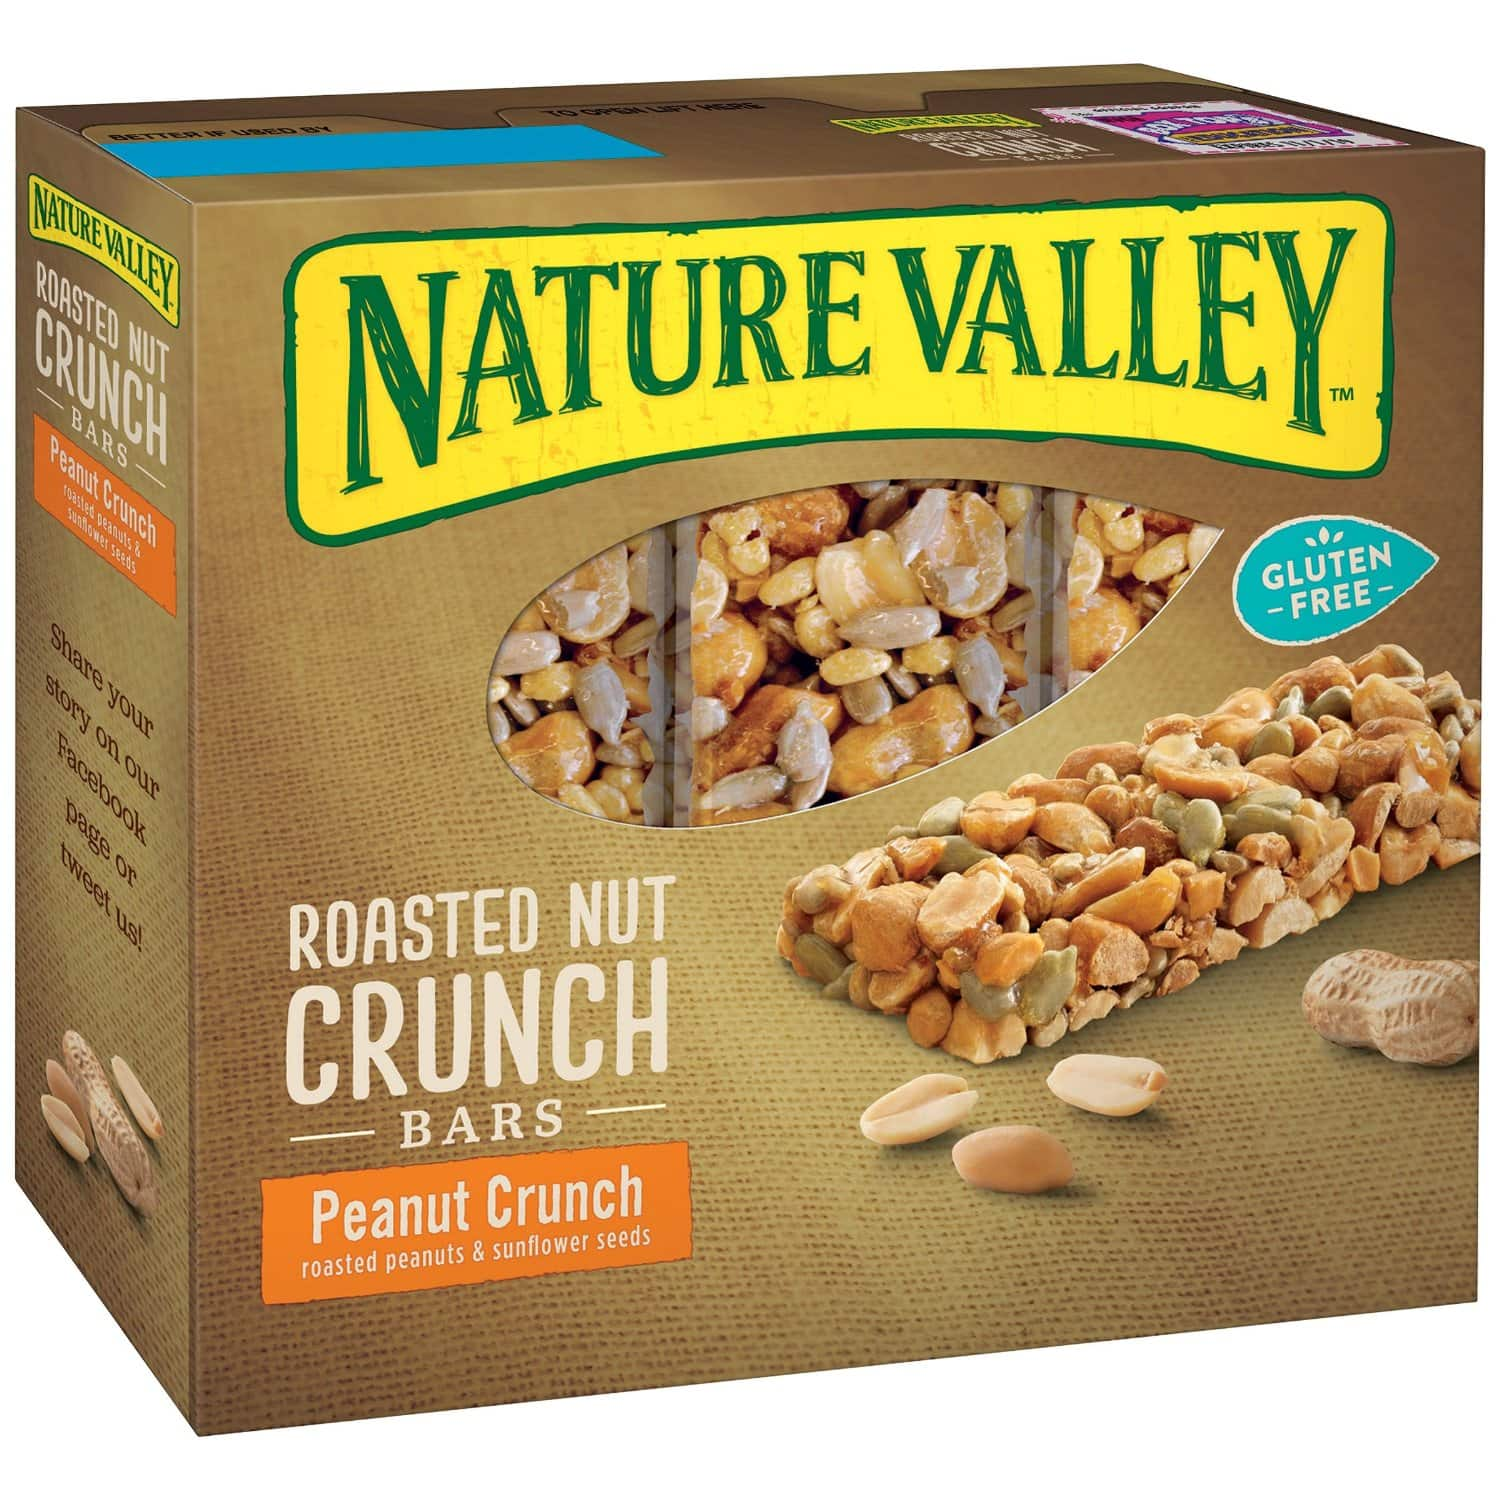 6-Count 1.24oz Nature Valley Roasted Nut Crunch Gluten Free (Peanut)  $3.50 + Free S&H